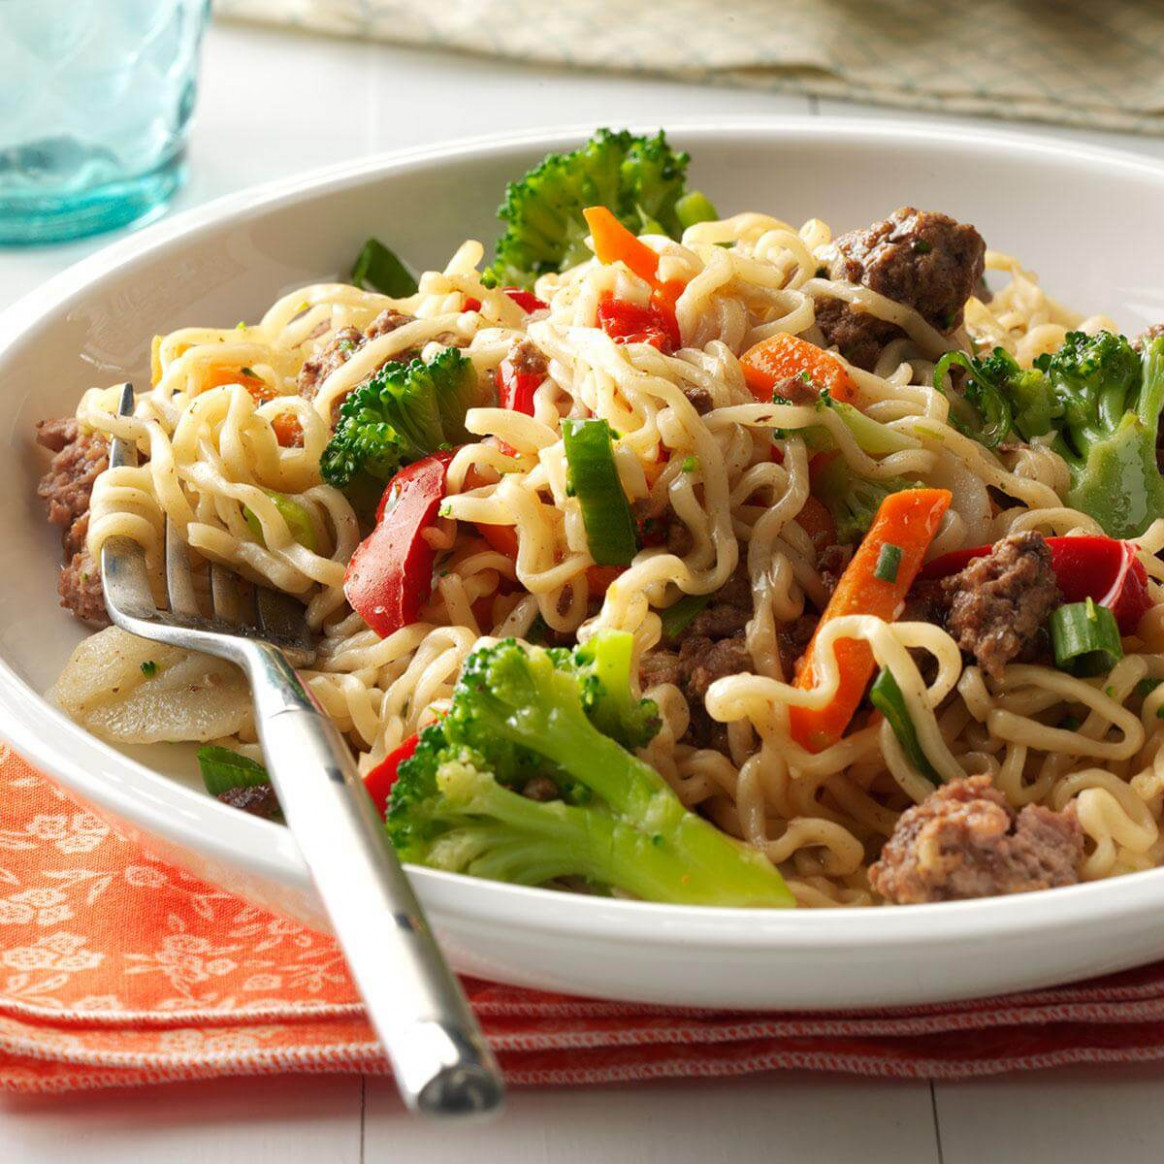 Asian Beef and Noodles Recipe | Taste of Home - food recipes noodles